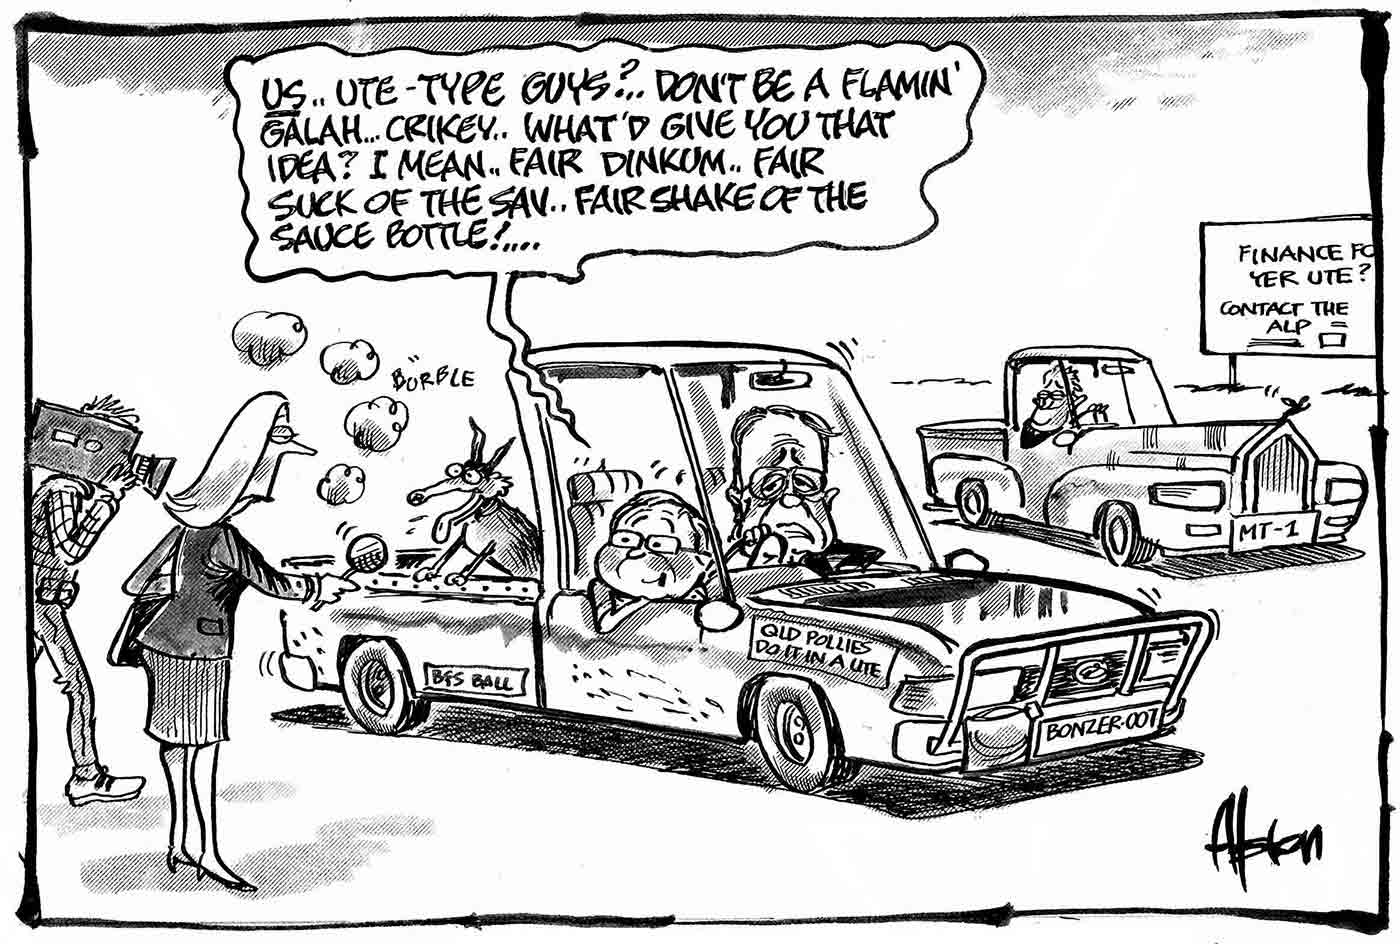 A black and white cartoon depicting Kevin Rudd and Wayne Swan in a ute. Mr Rudd is being interviewed by a female reporter, who stands to the left of the cartoon. A TV camera man stands next to her. Mr Rudd is leaning out of the ute window saying 'Us .. ute-type guys? .. don't be a flamin' galah ... crikey ... what'd give you that idea? I mean, fair dinkum .. fair suck of the sav .. fair shake of the sauce bottle! ...'. A dog sits excitedly in the back of Mr Rudd's ute. In the background Malcolm Turnbull sits in his own ute. It has a regular ute rear section and a Rolls Royce front section. Beyond Mr Turnbull's ute is a sign that says 'Finance for yer ute? Contact the ALP'.  - click to view larger image